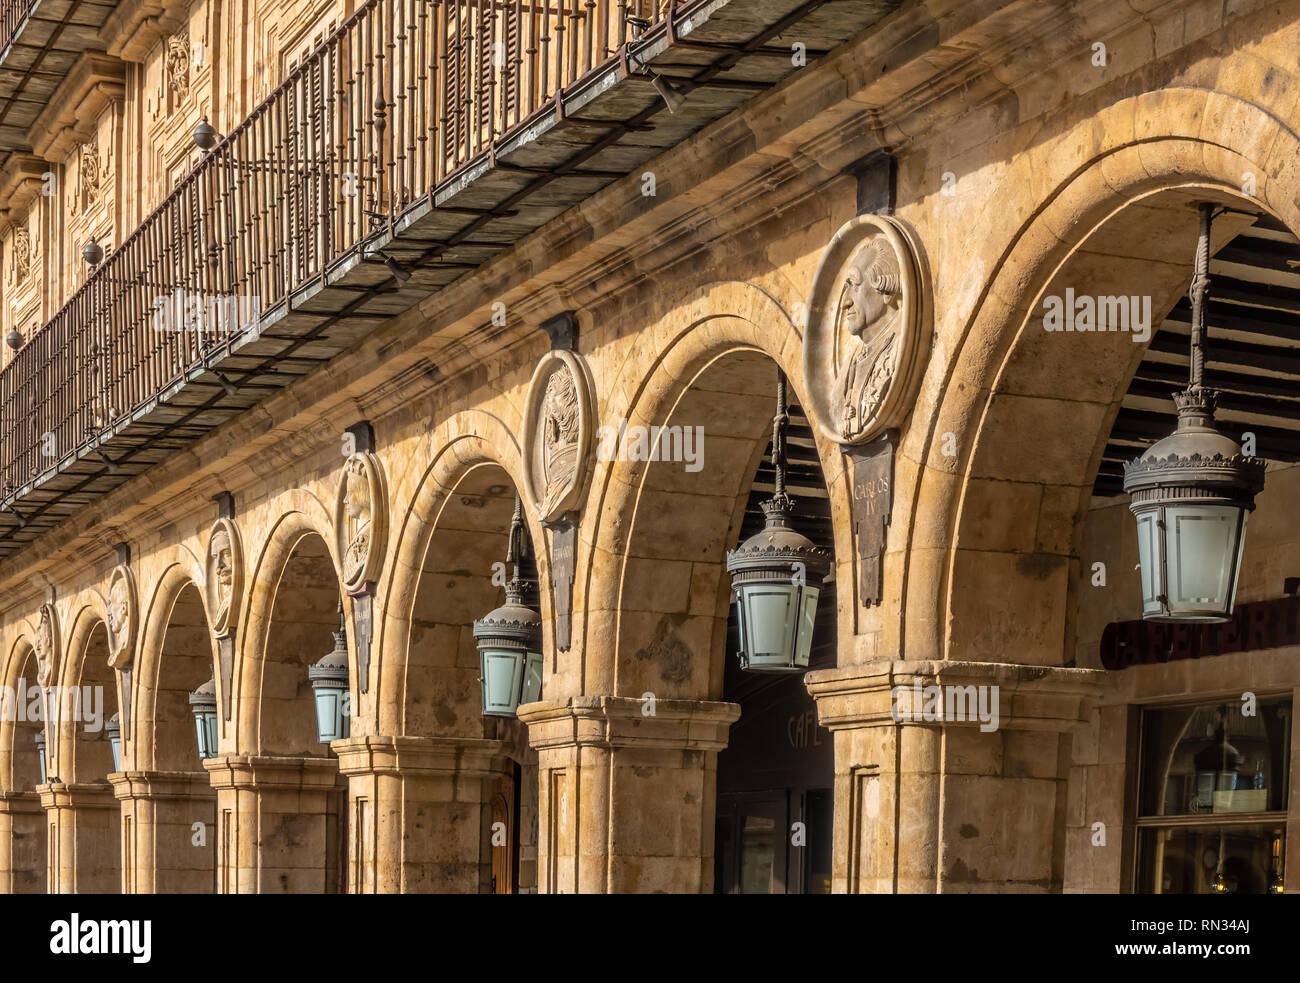 The Plaza Mayor, Salamanca, Castile-Leon, Spain. A public square. built in the traditional Spanish baroque style and  a popular gathering area. One of Stock Photo